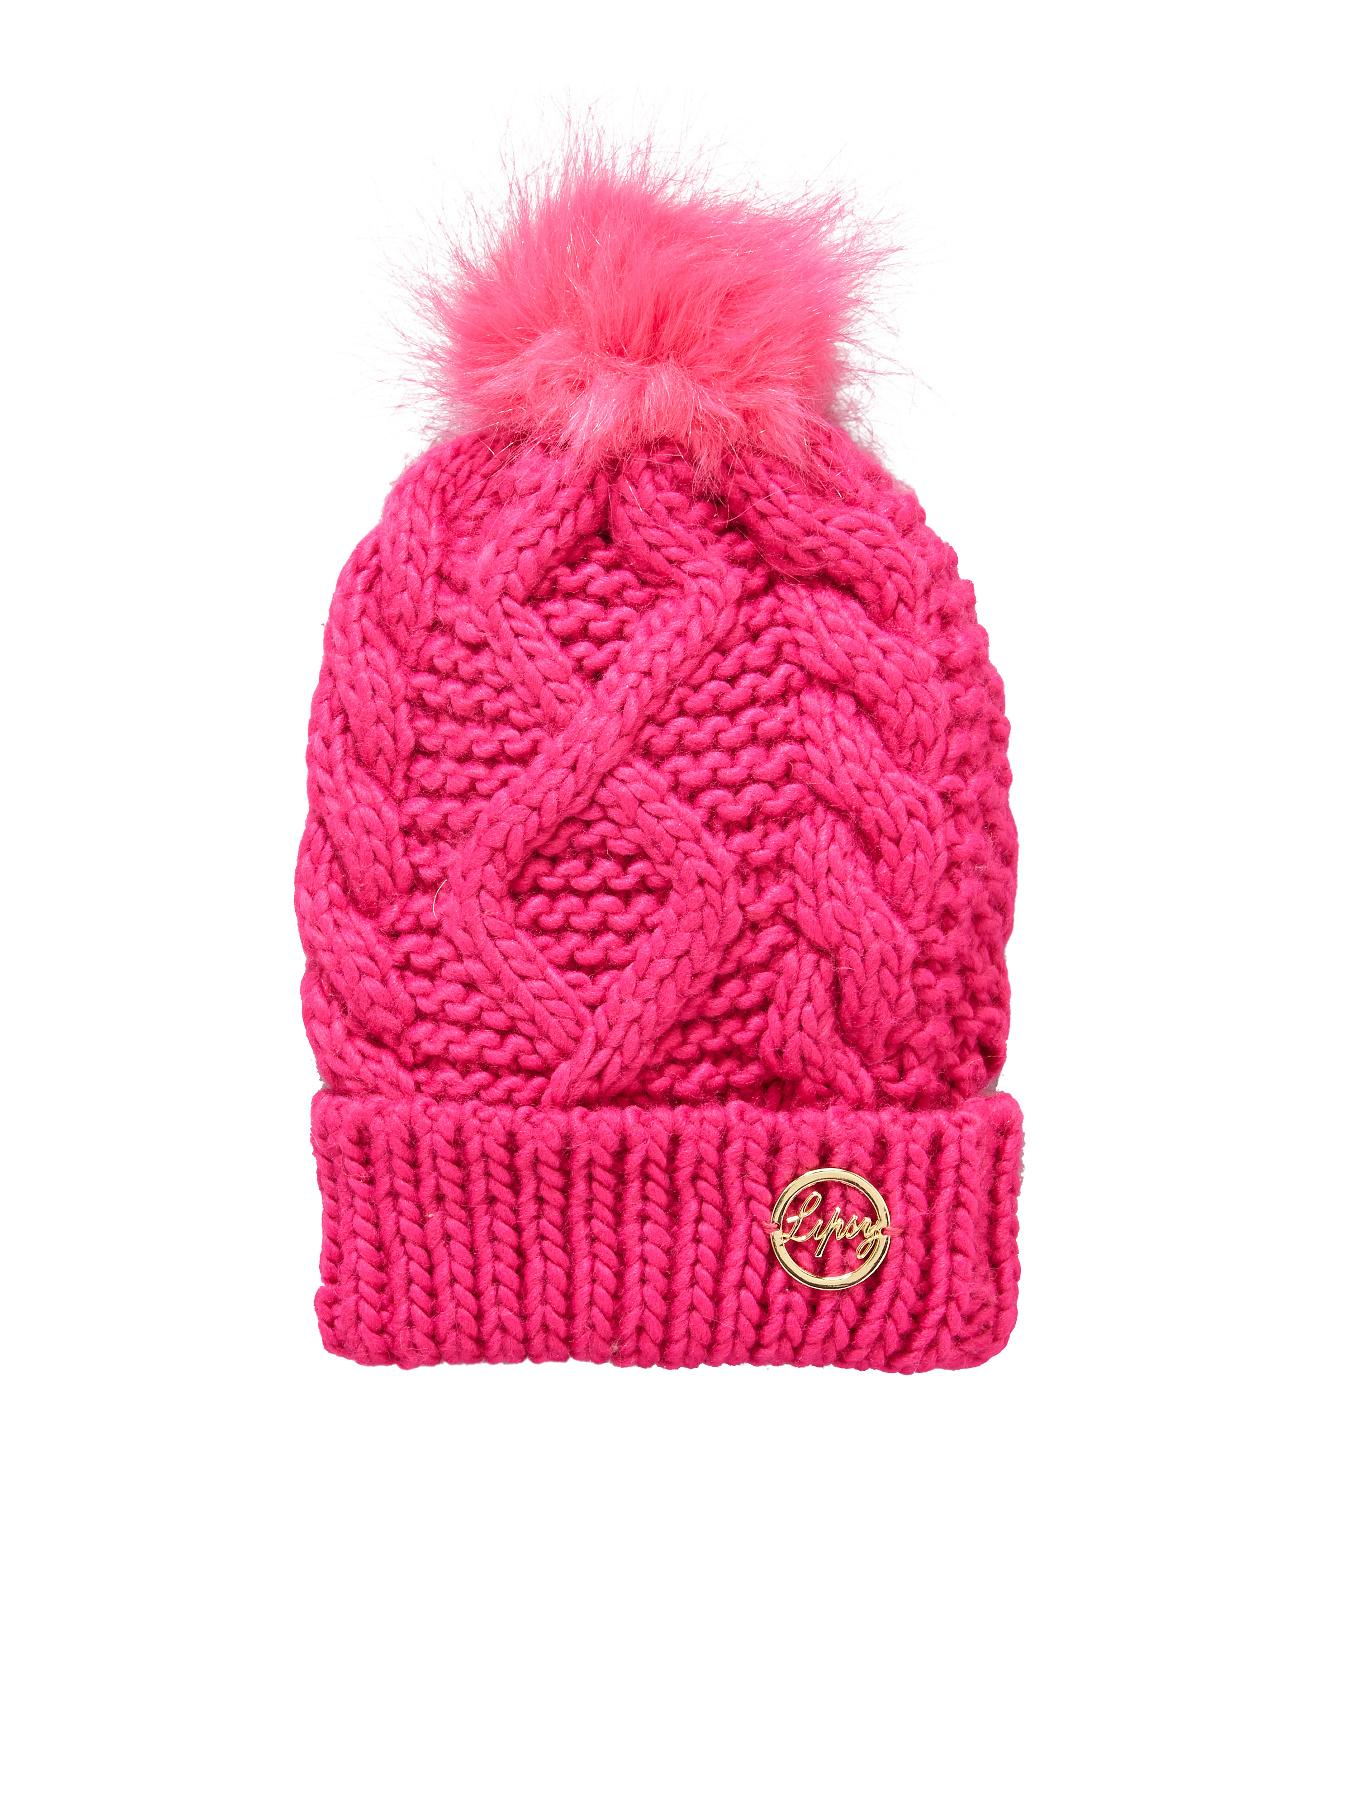 Cable Knit Bobble Beanie, Pink at Littlewoods